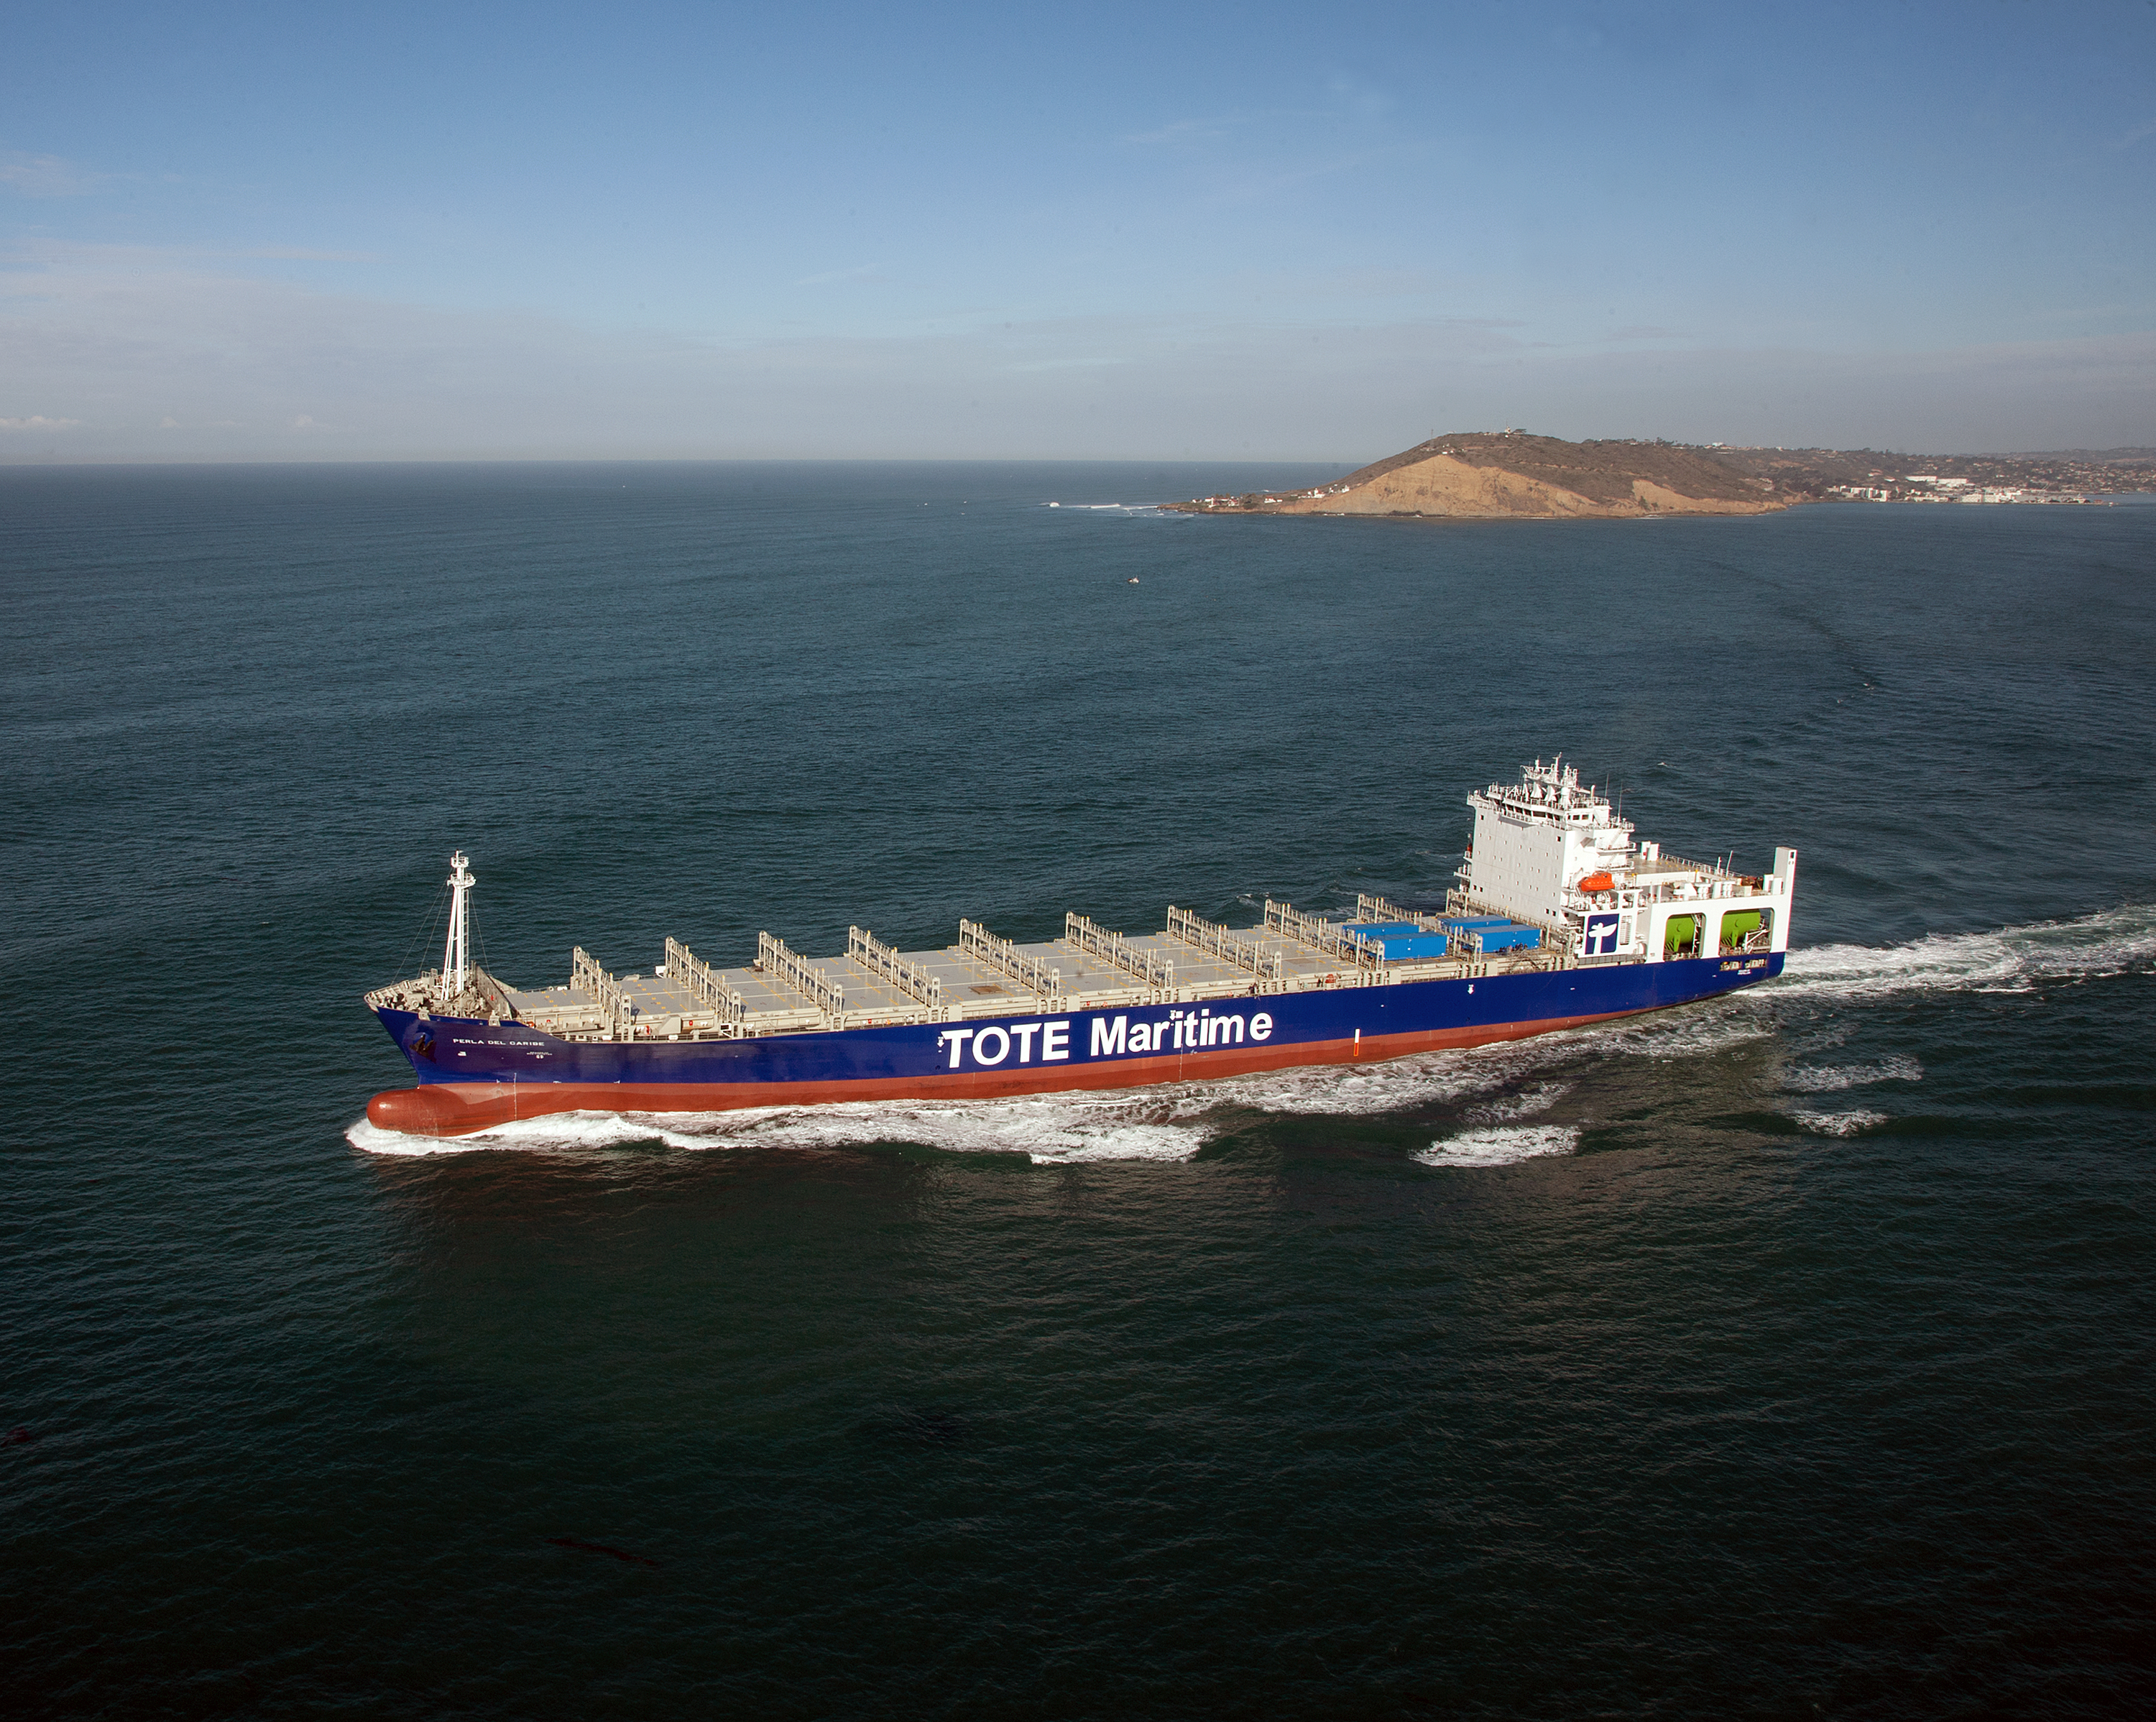 The World's First LNG-Powered Containerships: The Perla del Caribe